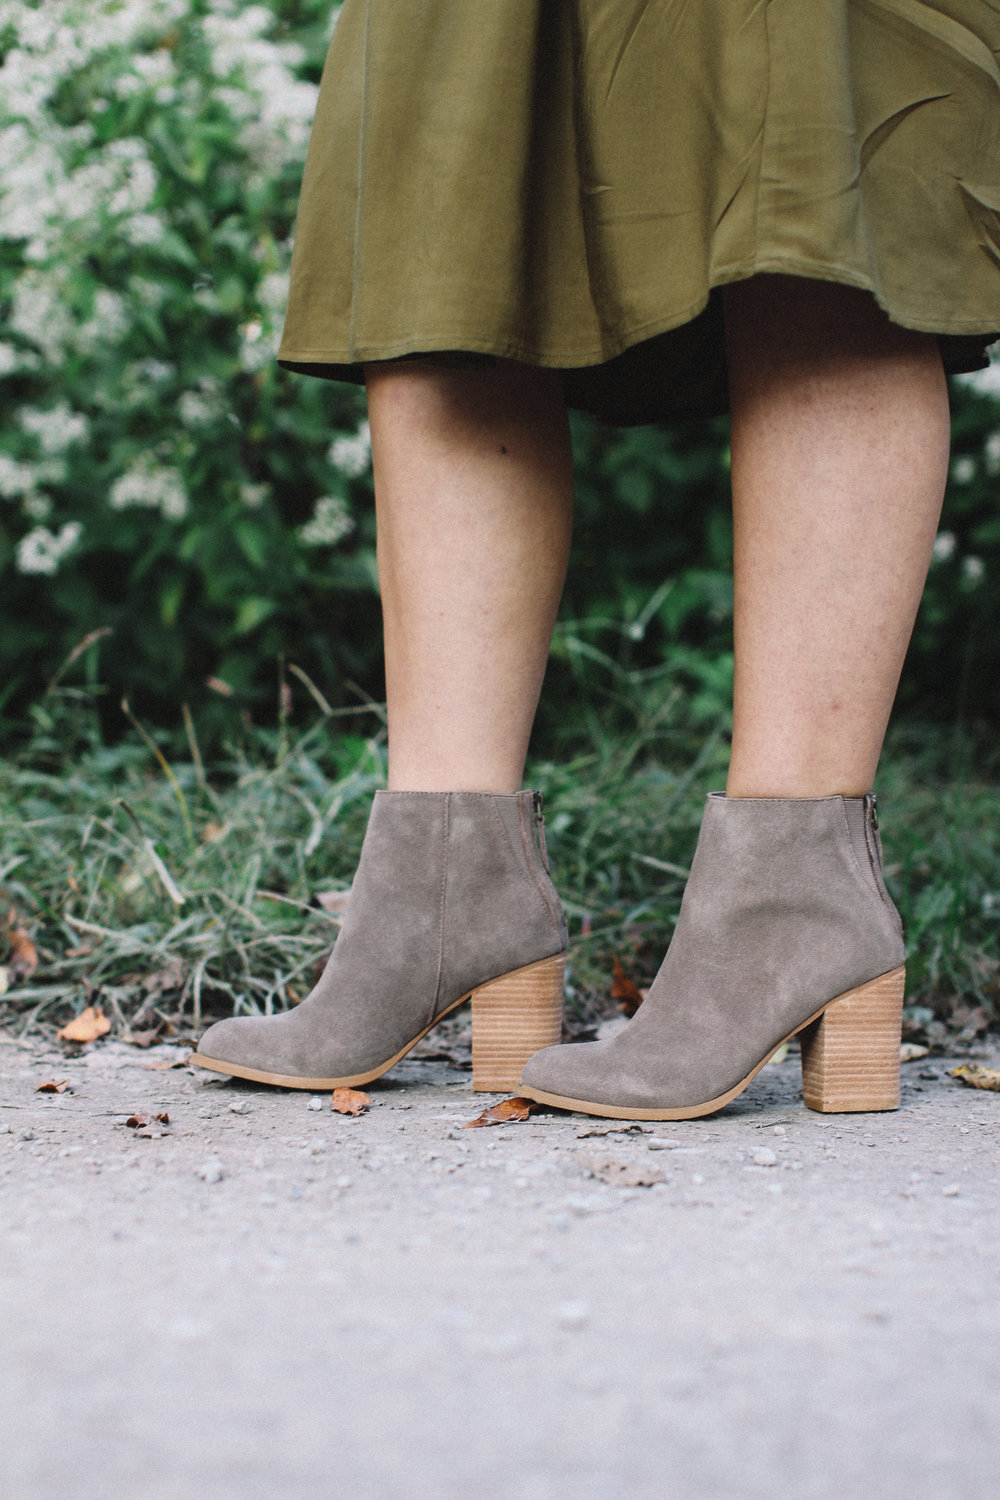 Ecote booties via @urbanoutfitters on chelceytate.com